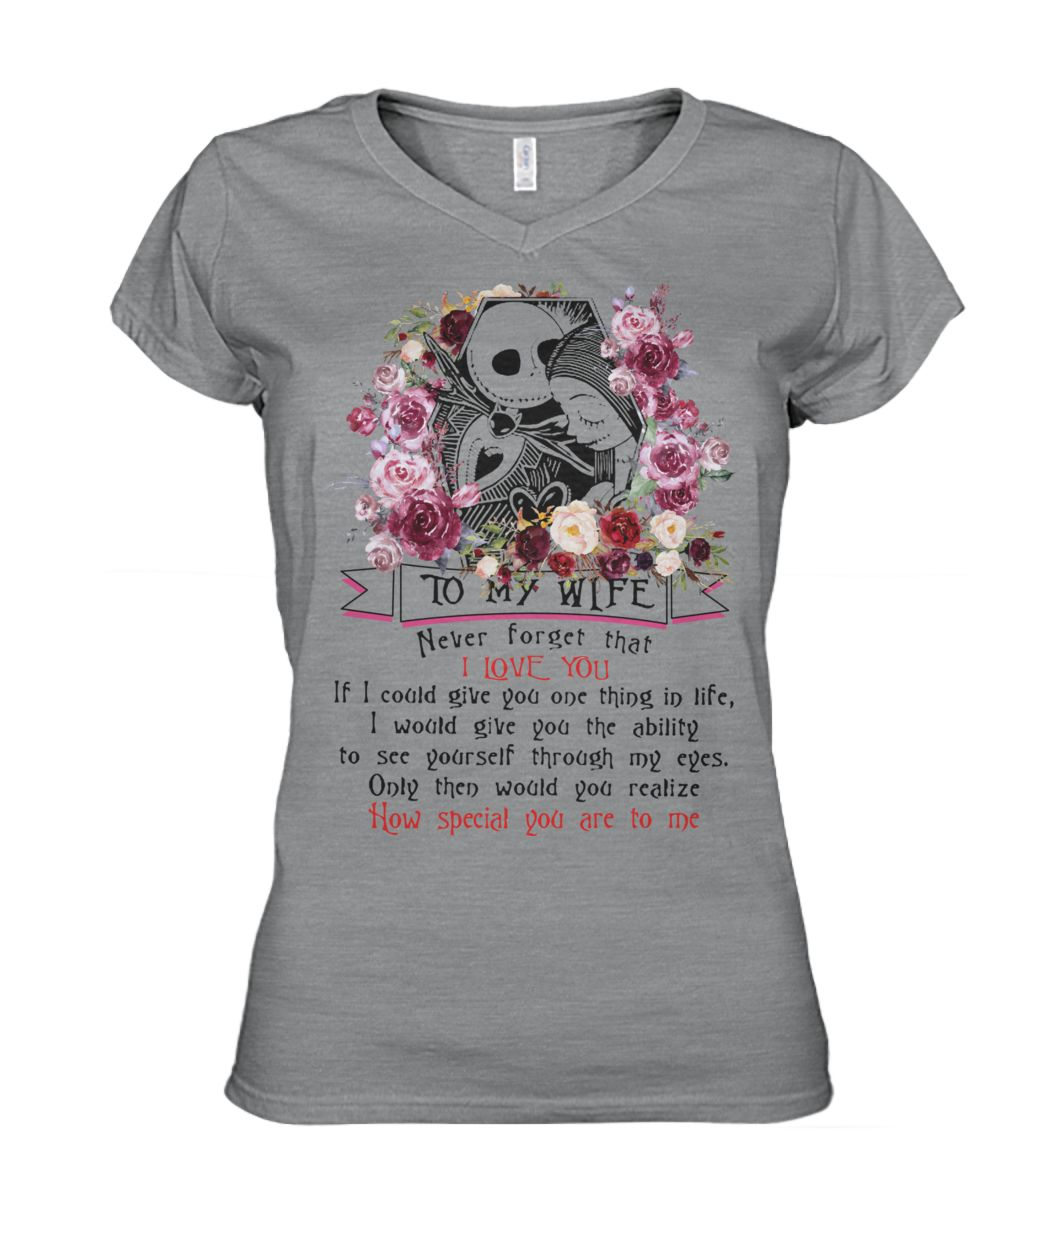 Jack skellington and sally to my wife never forget that I love you women's v-neck